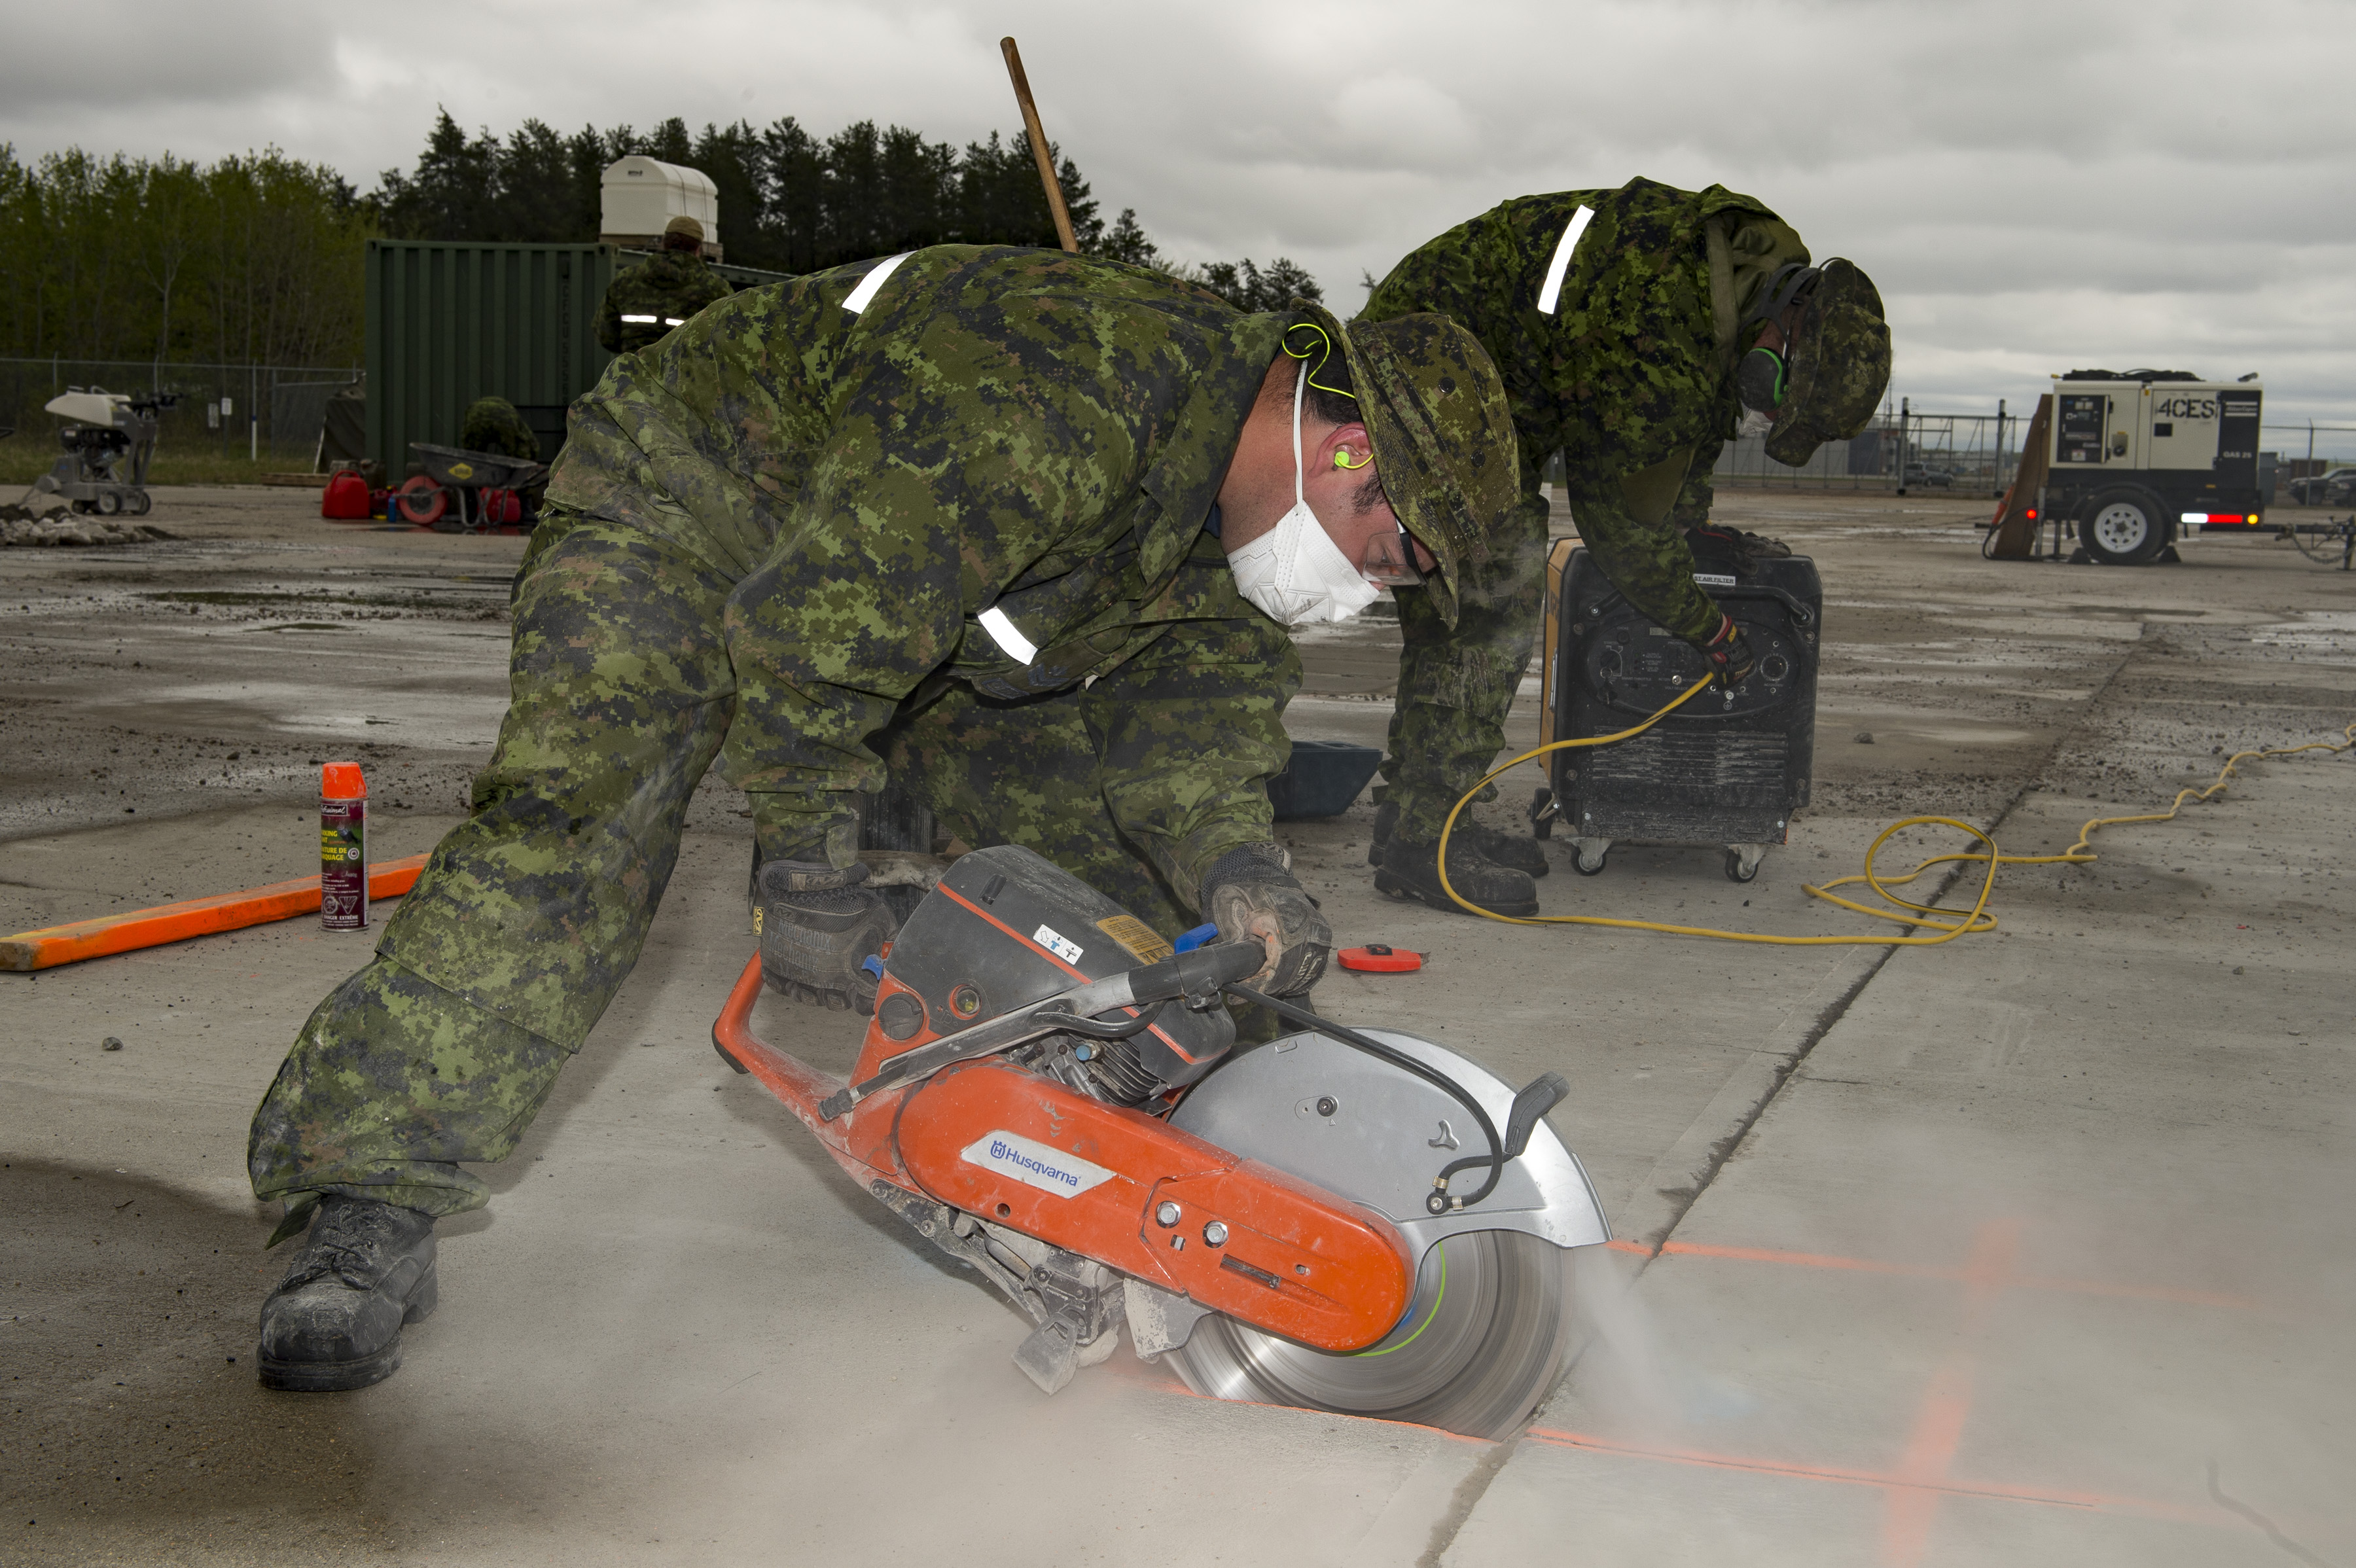 Master Corporal Keven Black of 2 Wing Bagotville, Quebec, using a concrete saw, cuts a portion of runway to be repaired during the Airfield Light Repair course held at 4 Wing Cold Lake, Alberta, from May 8 to 19, 2017. PHOTO: Corporal Justin Roy, CK07-2017-0348-007